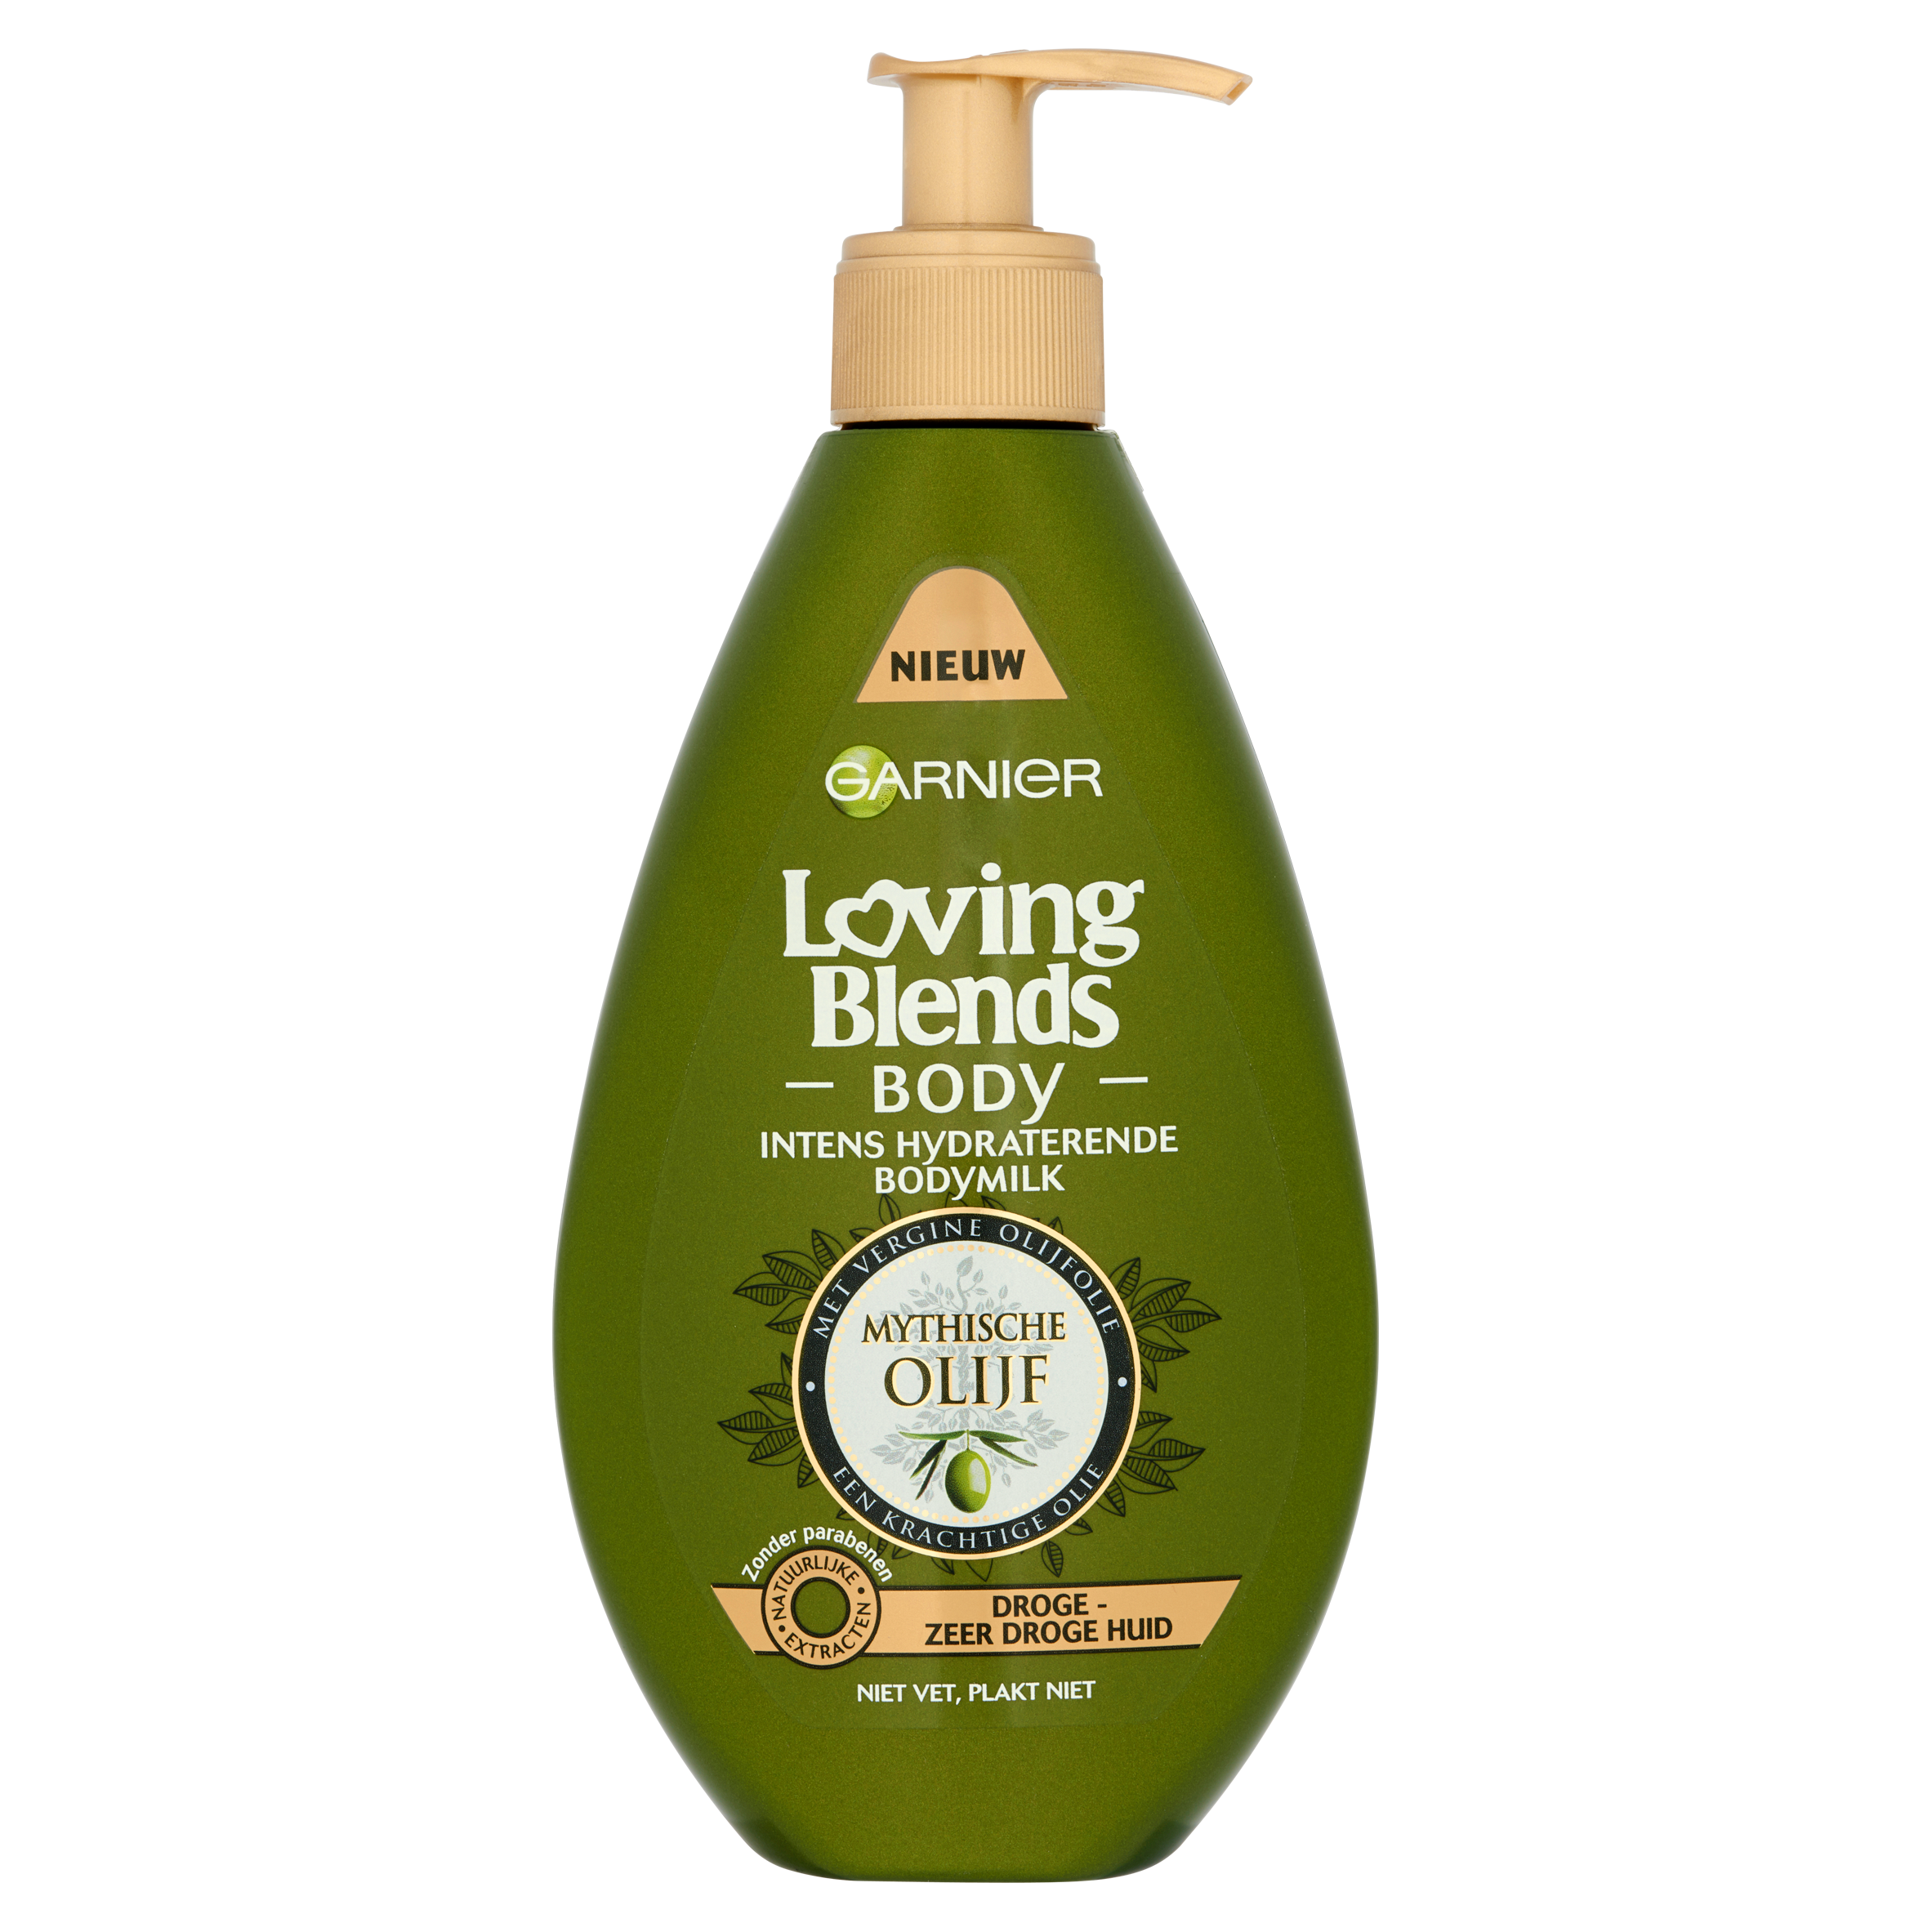 Garnier Loving Blends Body Intens Hydraterende Bodymilk 250 ml